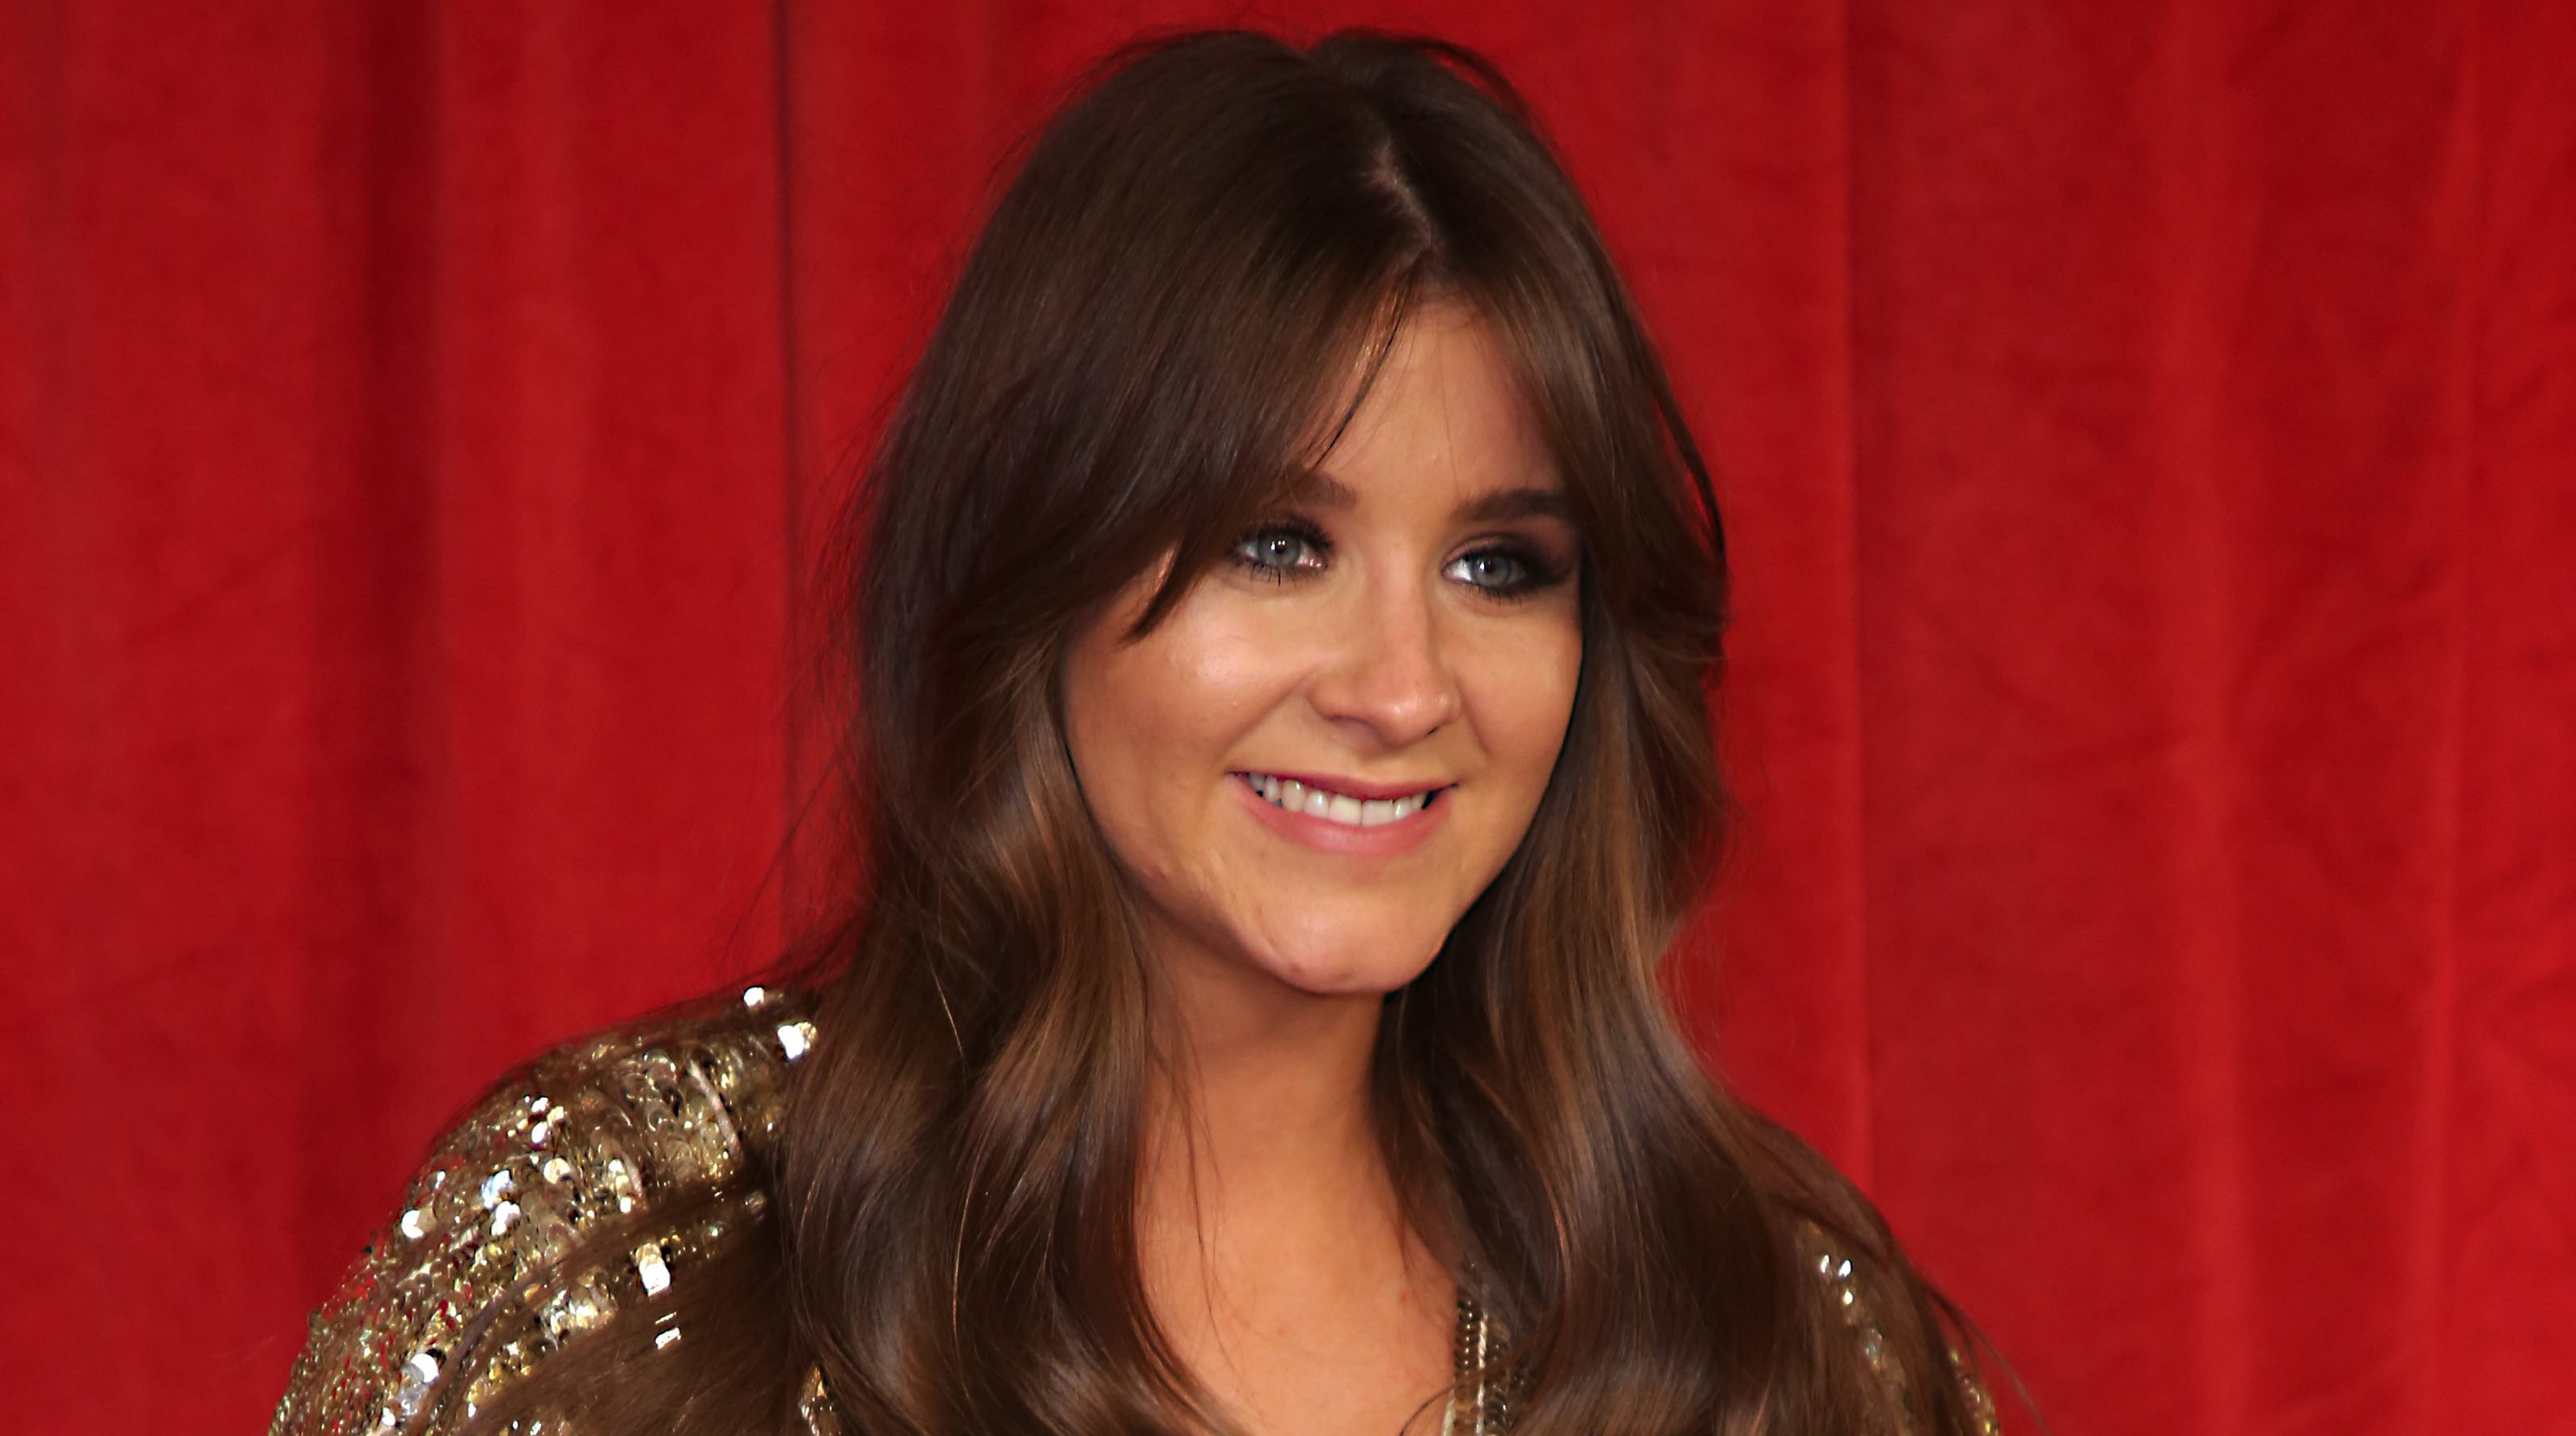 Pregnant Brooke Vincent shares cute baby bump picture as maternity leave begins